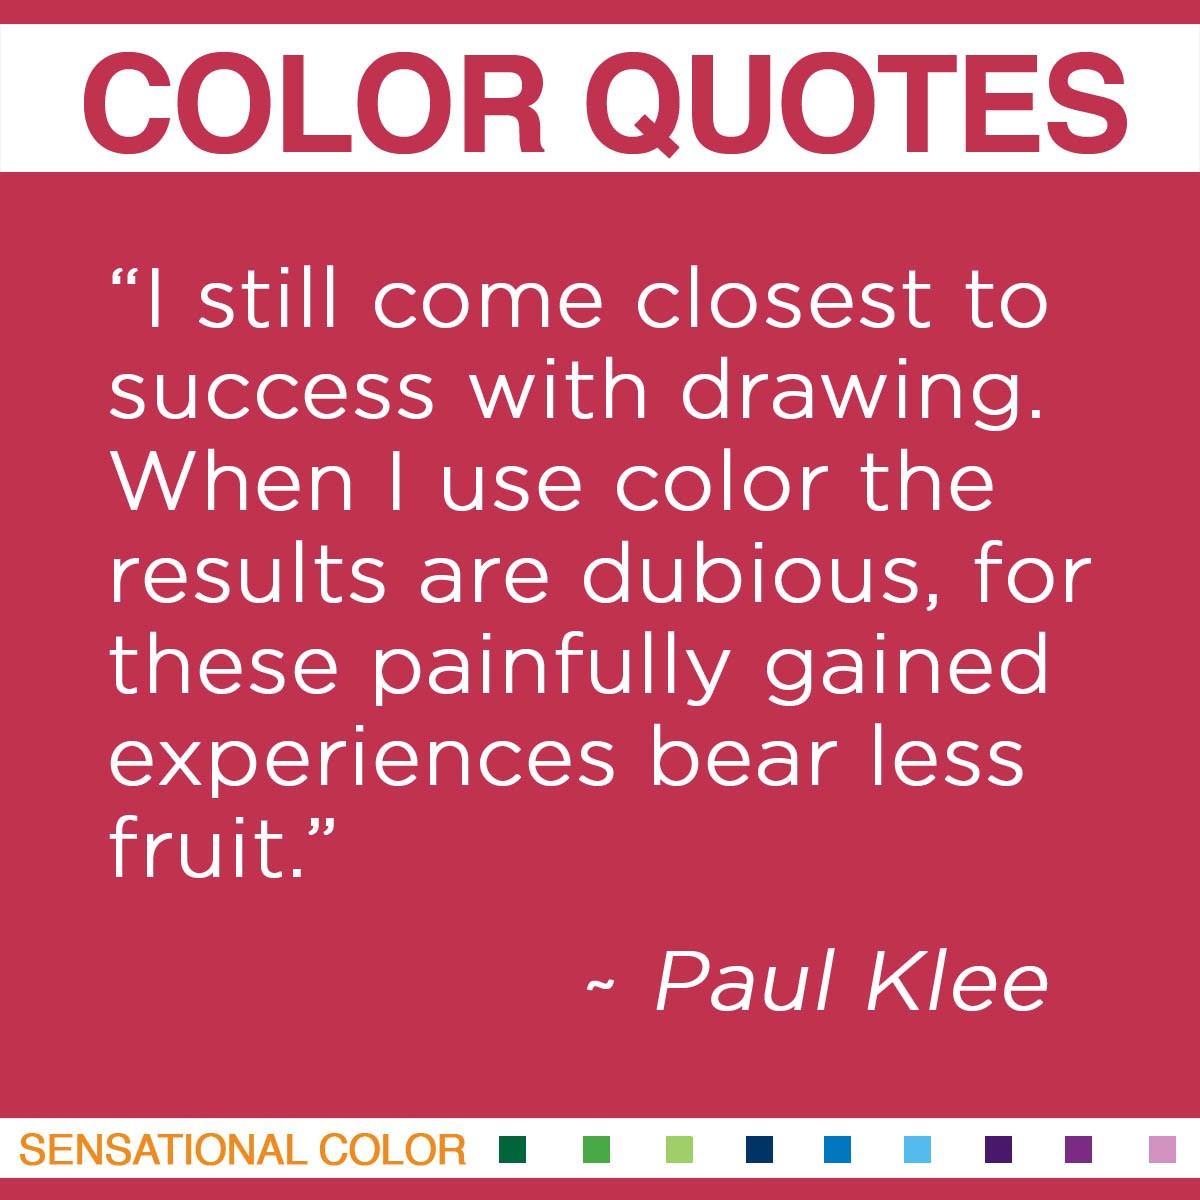 """""""I still come closest to success with drawing. When I use color the results are dubious, for these painfully gained experiences bear less fruit.""""  - Paul Klee"""